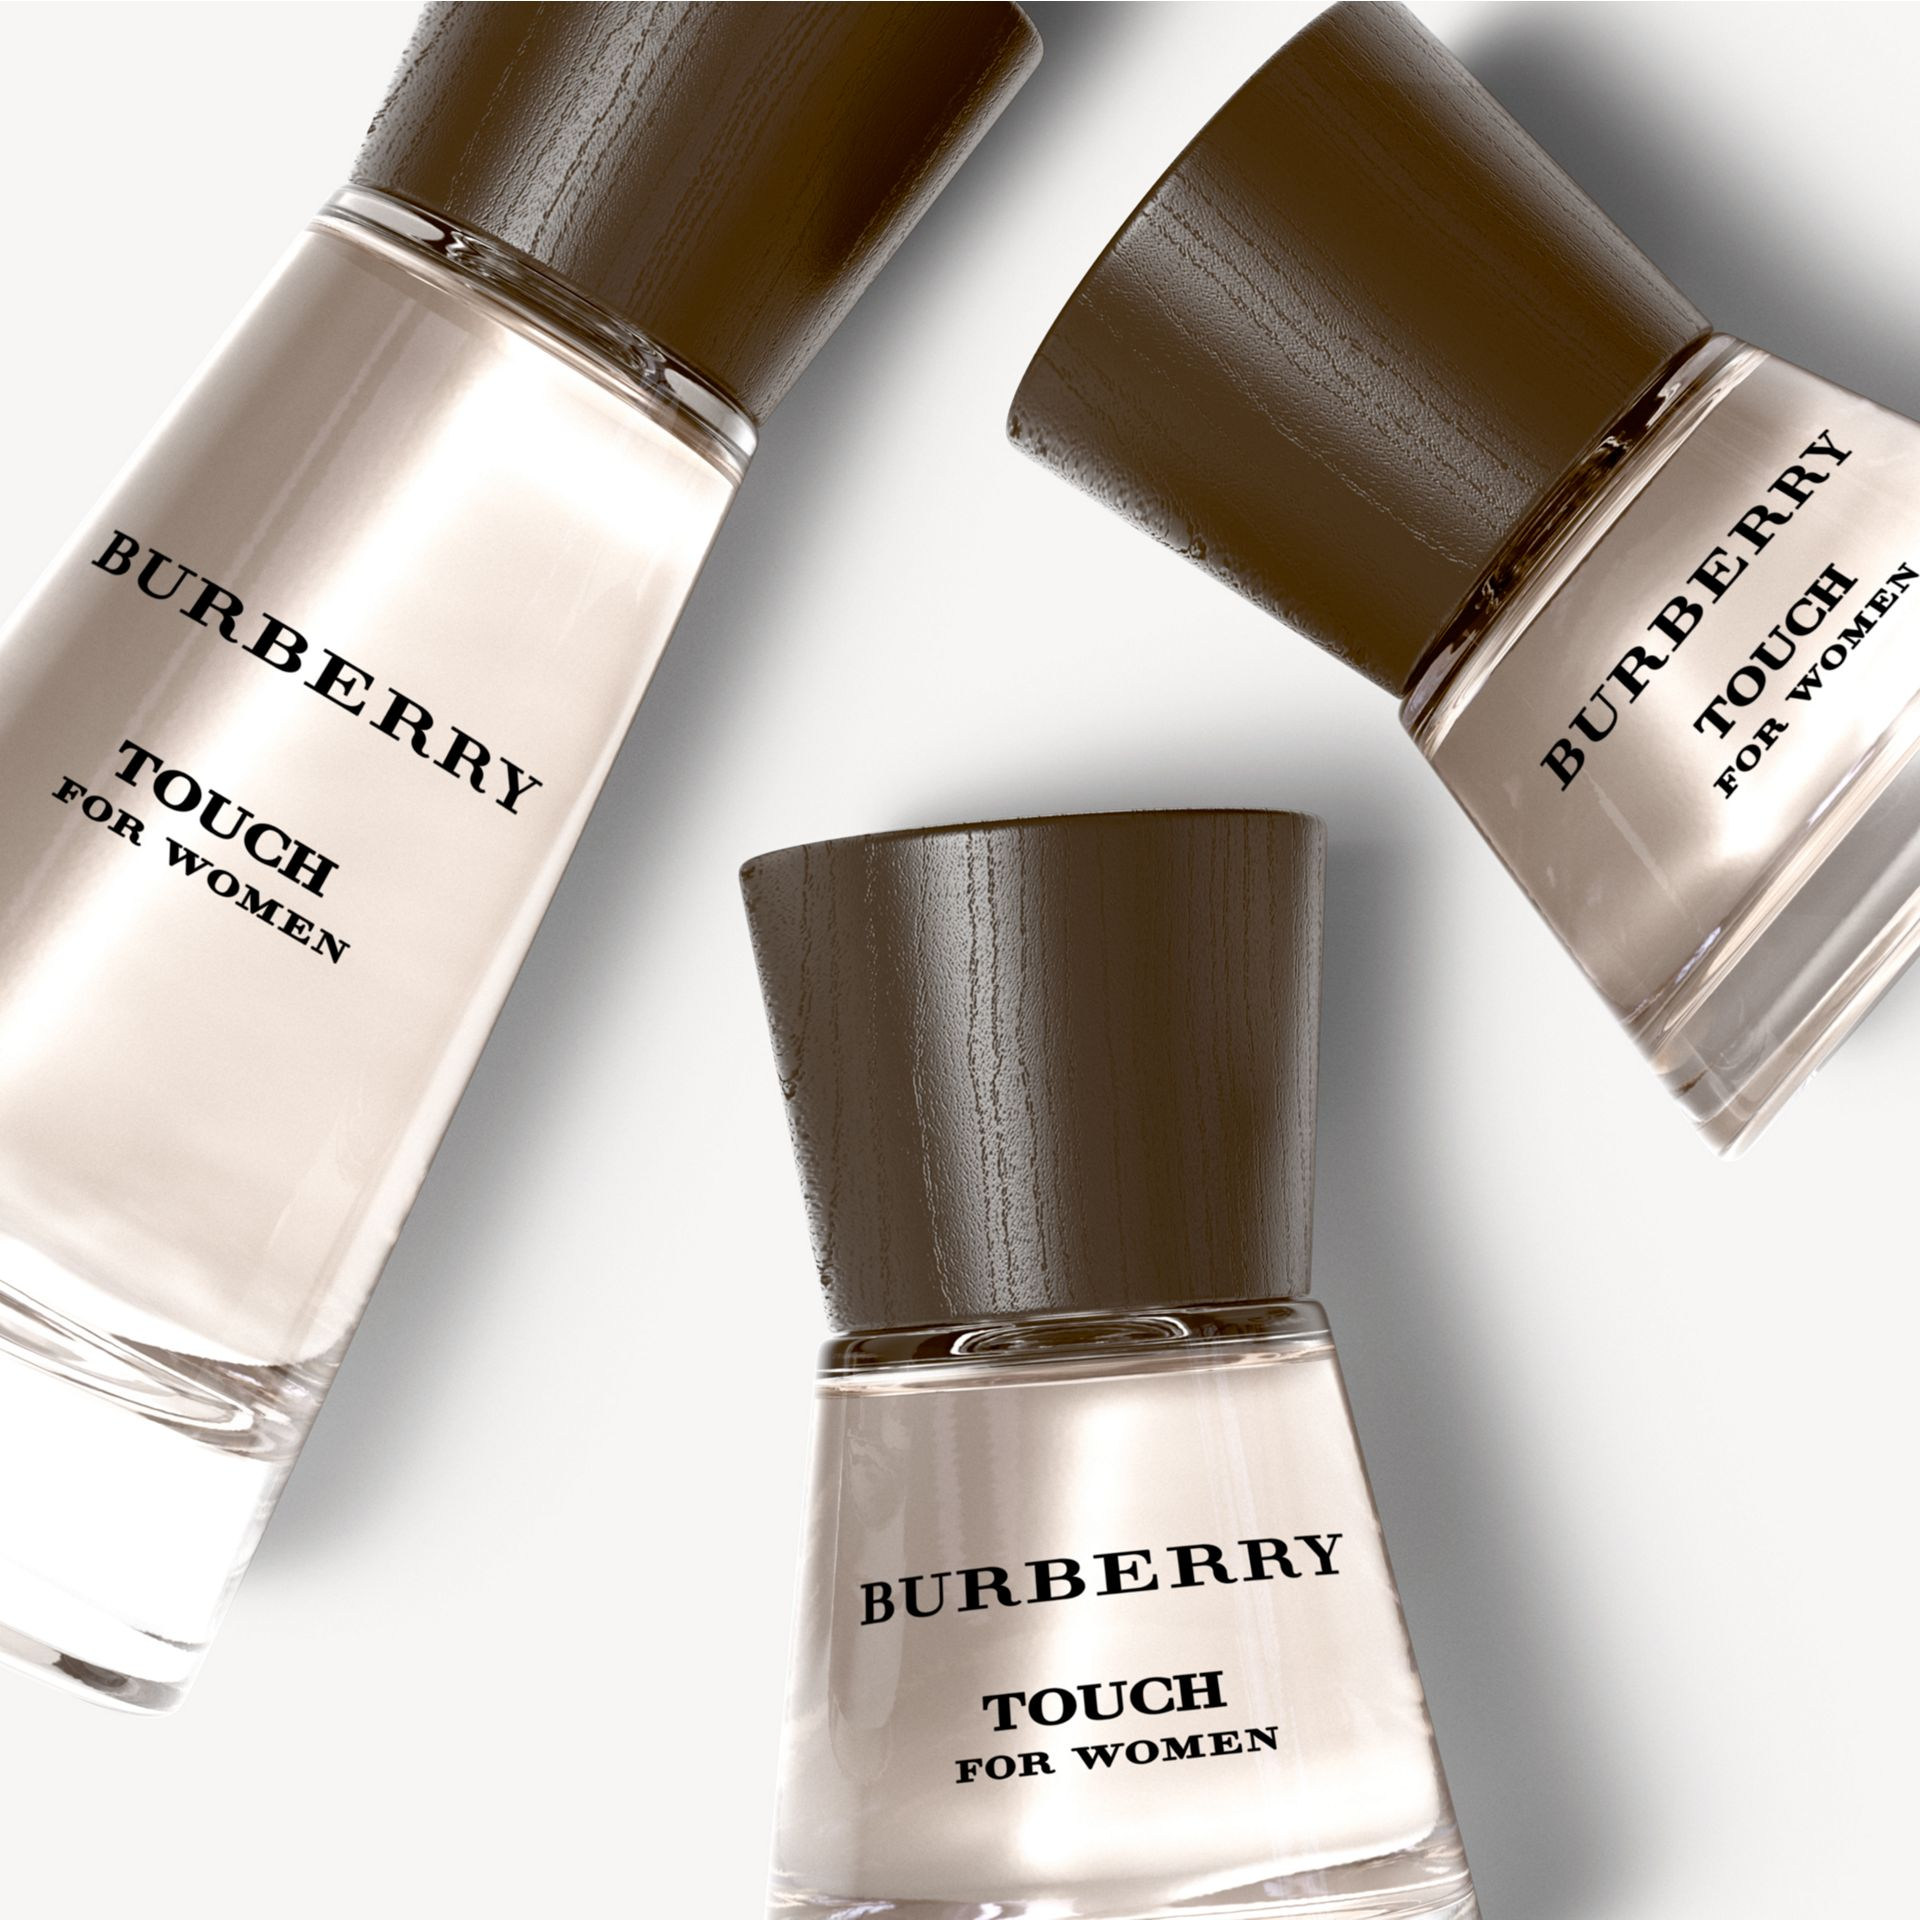 Burberry Touch For Women Eau De Parfum 30 ml - galeria de imagens 2